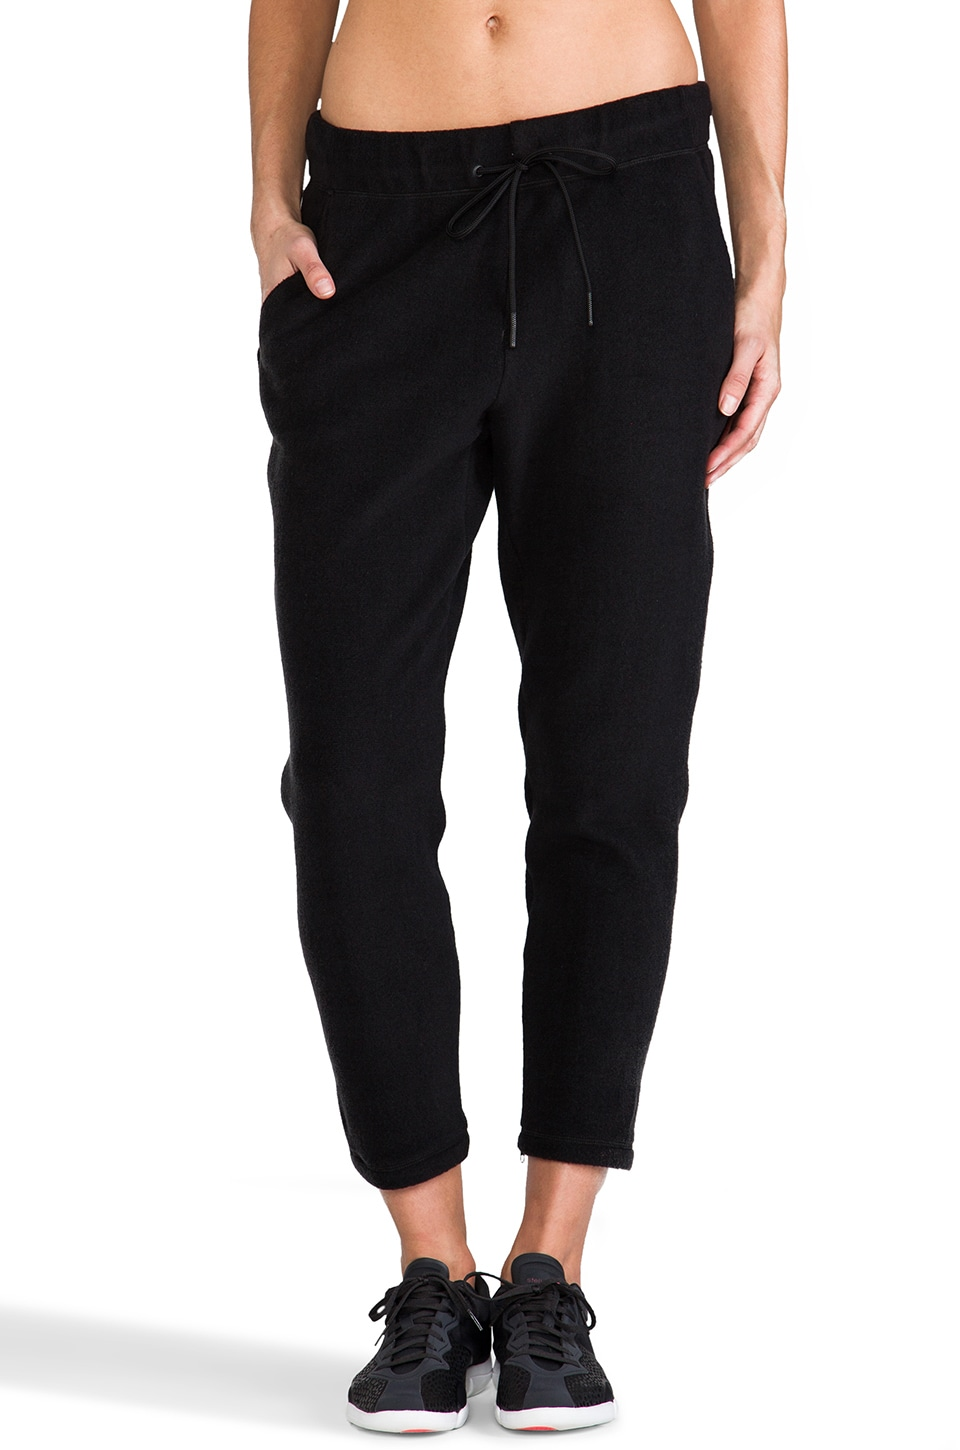 Theory 38 Roady Toto D Pants in Black